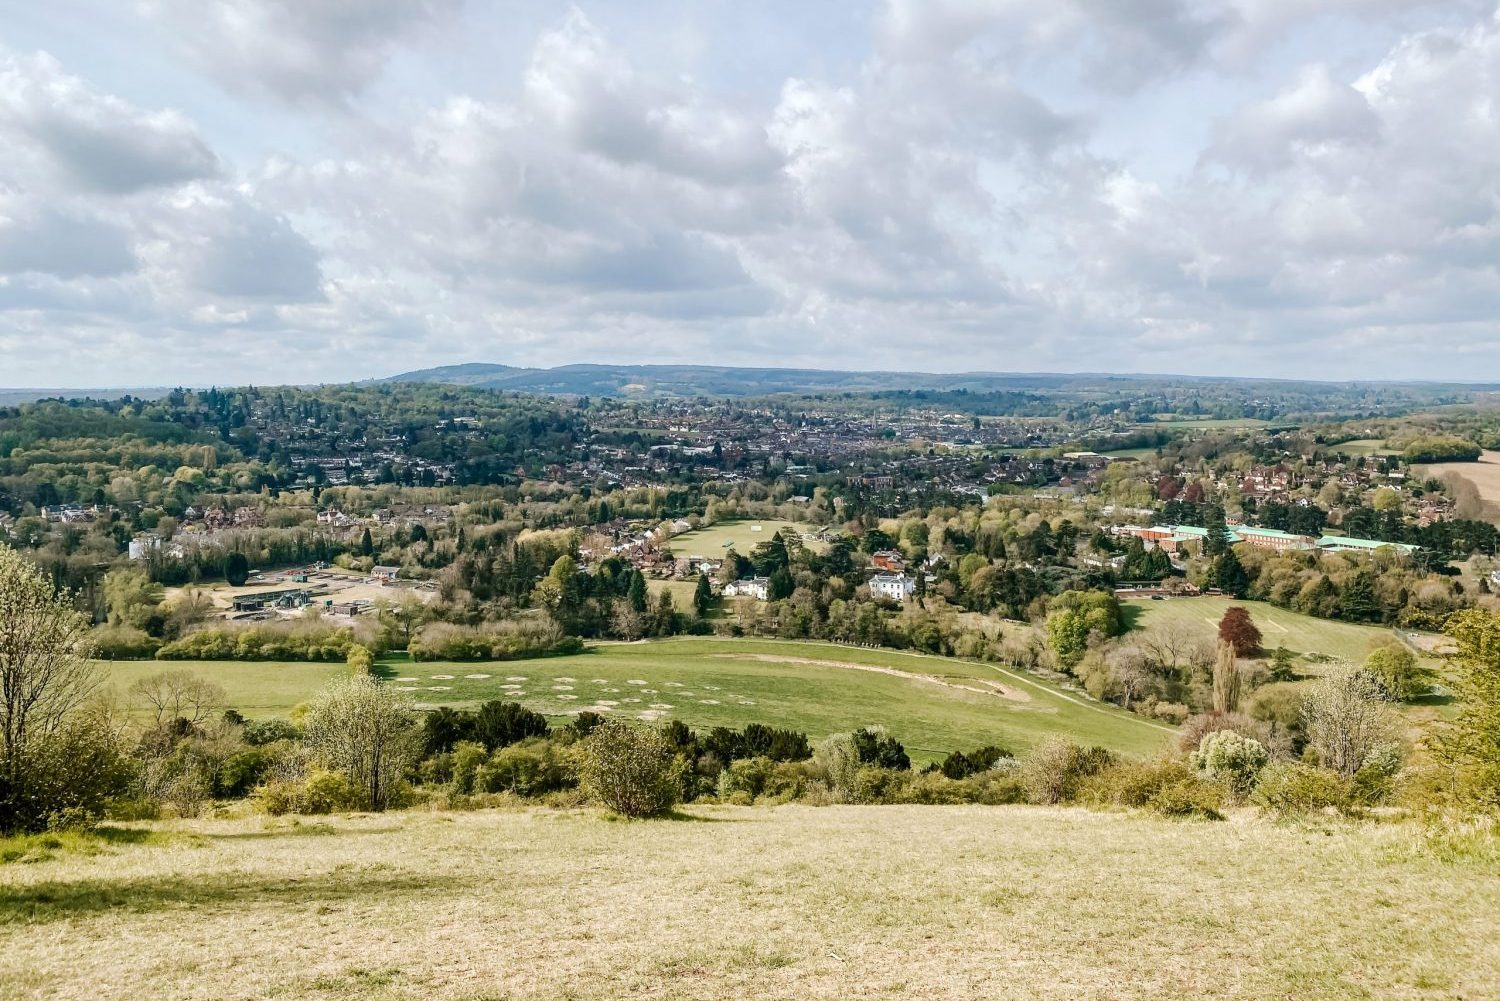 A view of the rolling hills looking out to the South Downs from Box Hill in Surrey